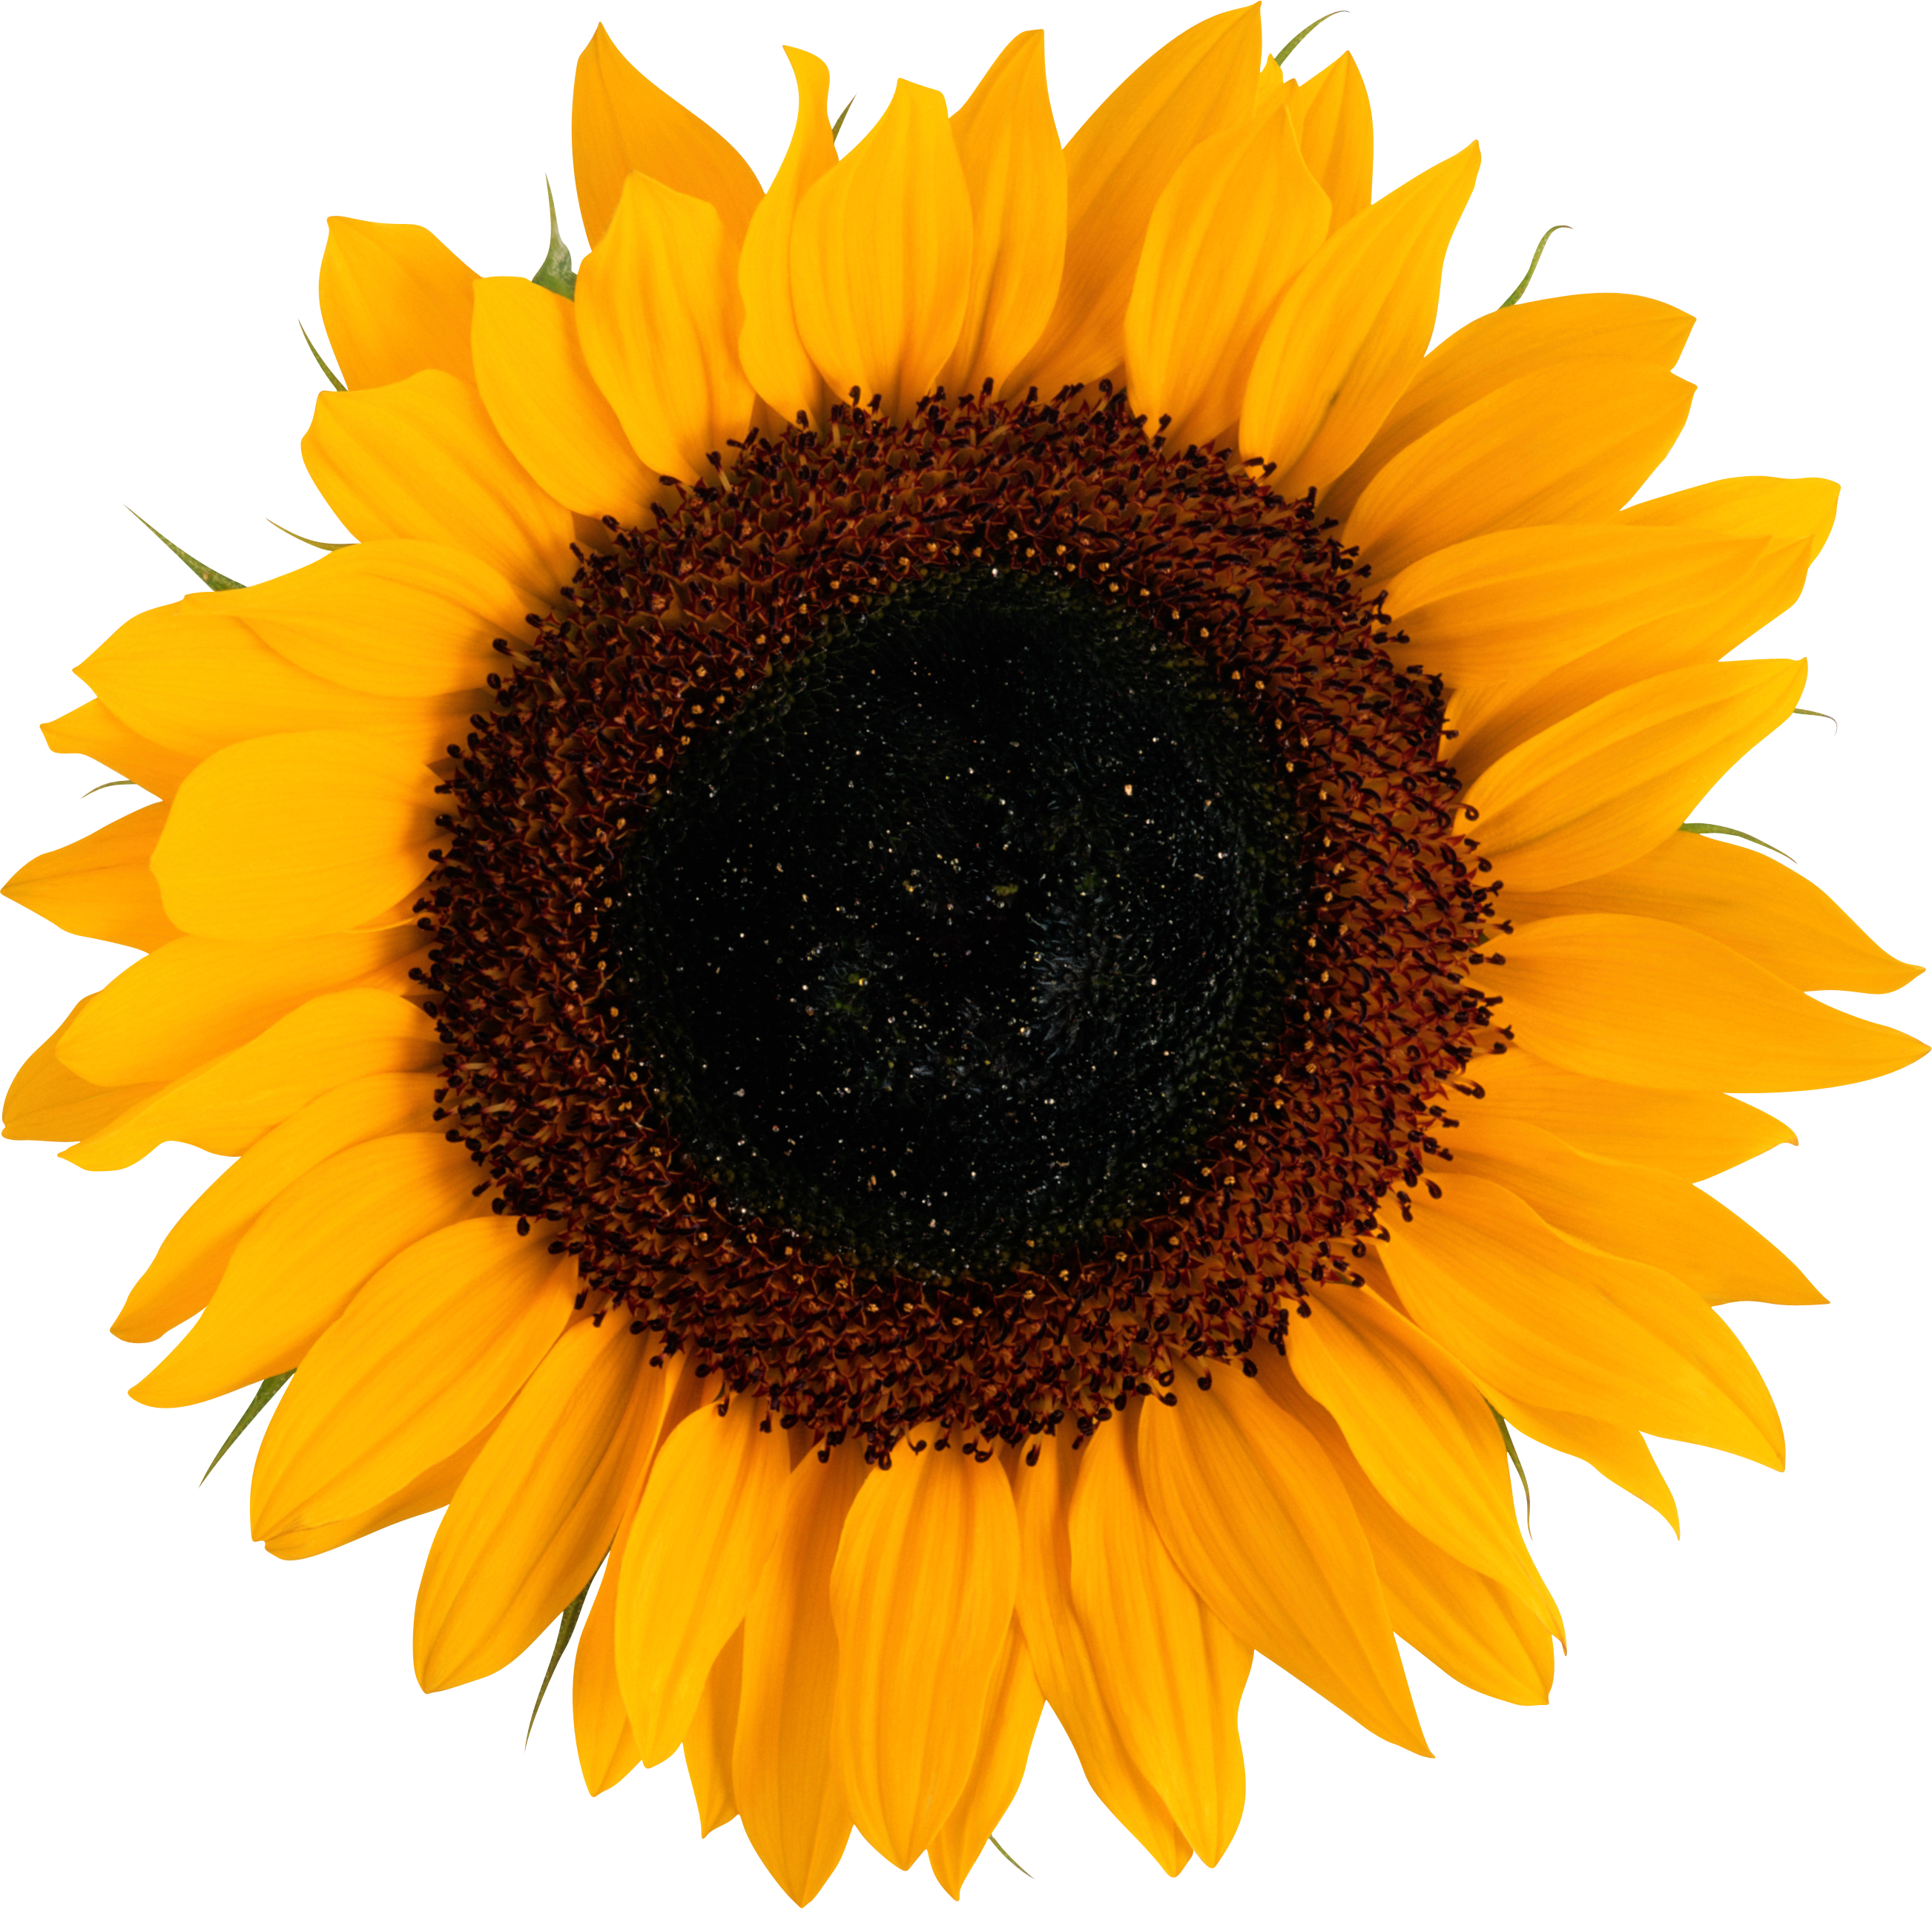 Sunflower PNG images free download